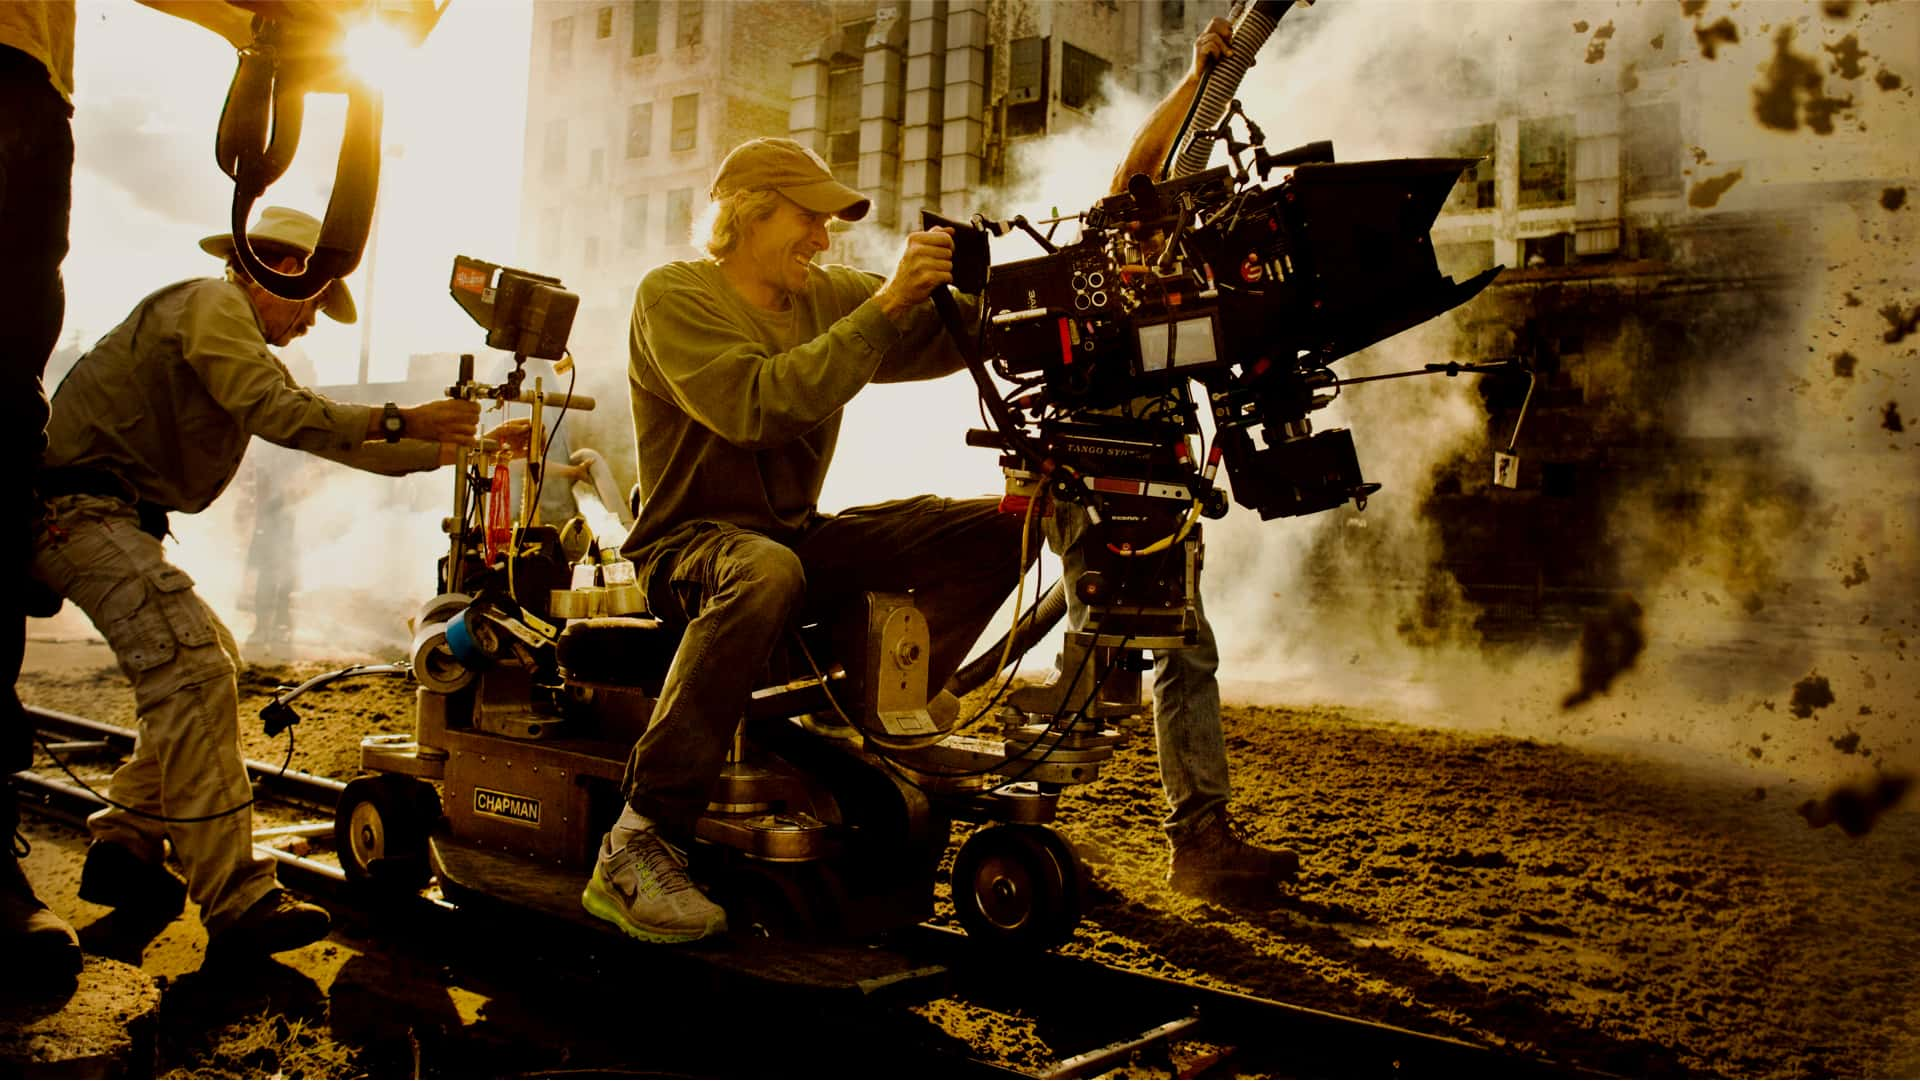 Michael Bay Best Movies - Camera Movement and Shot Type - Header - StudioBinder